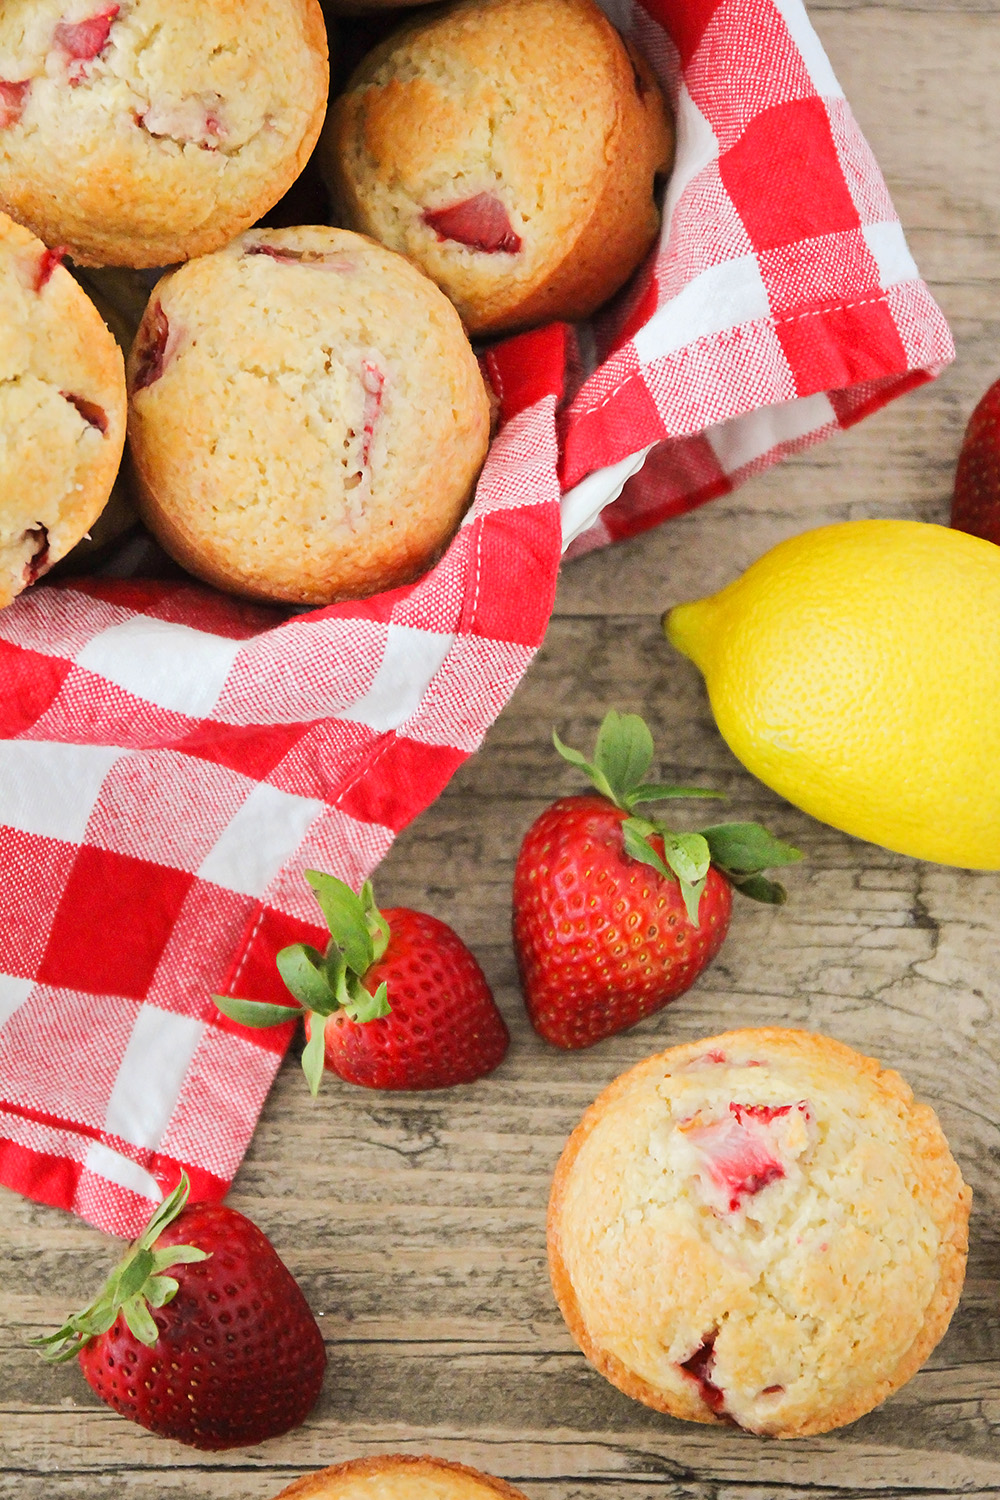 These strawberry lemonade muffins are so light and tender, and so flavorful too! They're bursting with juicy strawberries, and perfect for breakfast or brunch.